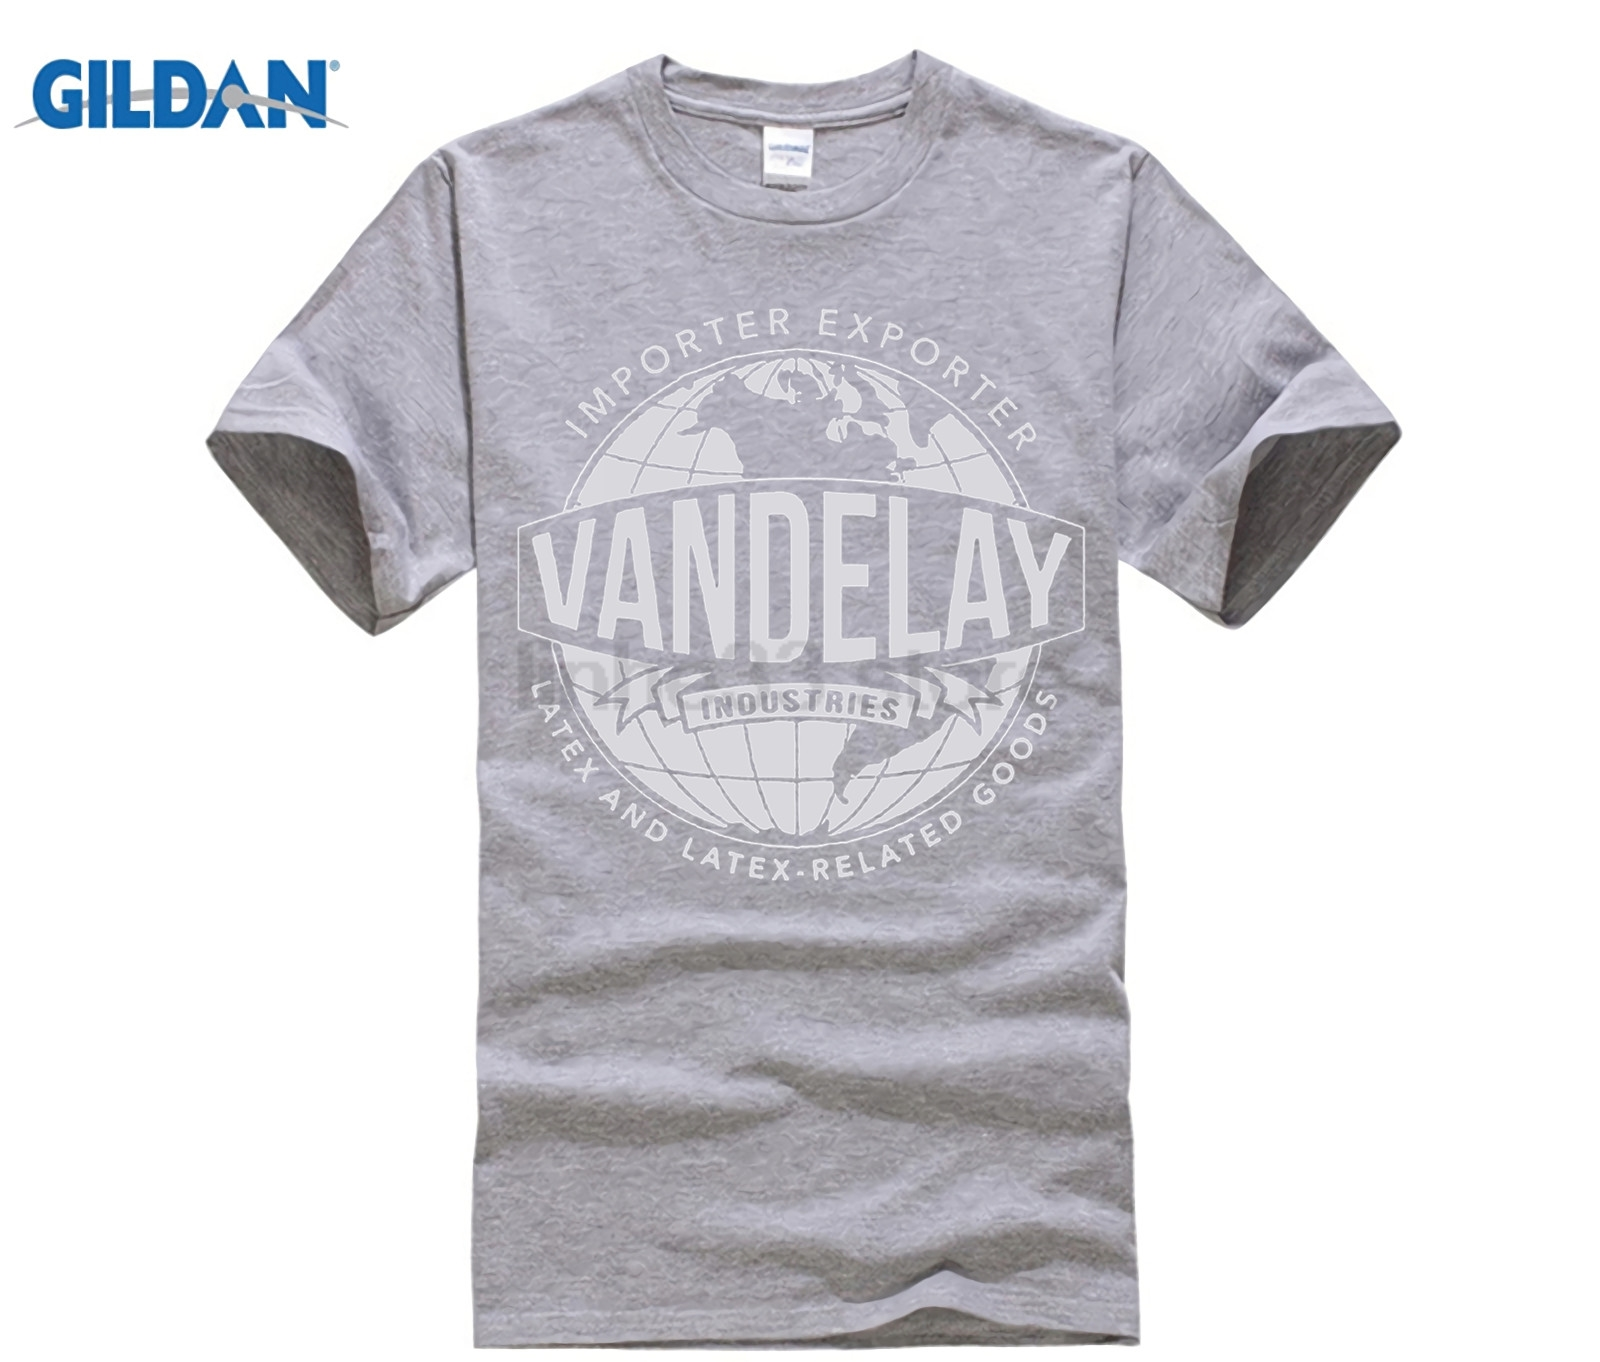 GILDAN T Shirt Men Tees Brand Clothing Funny Vandelay Industries Seinfeld Tv Show By That In Shirts From Mens